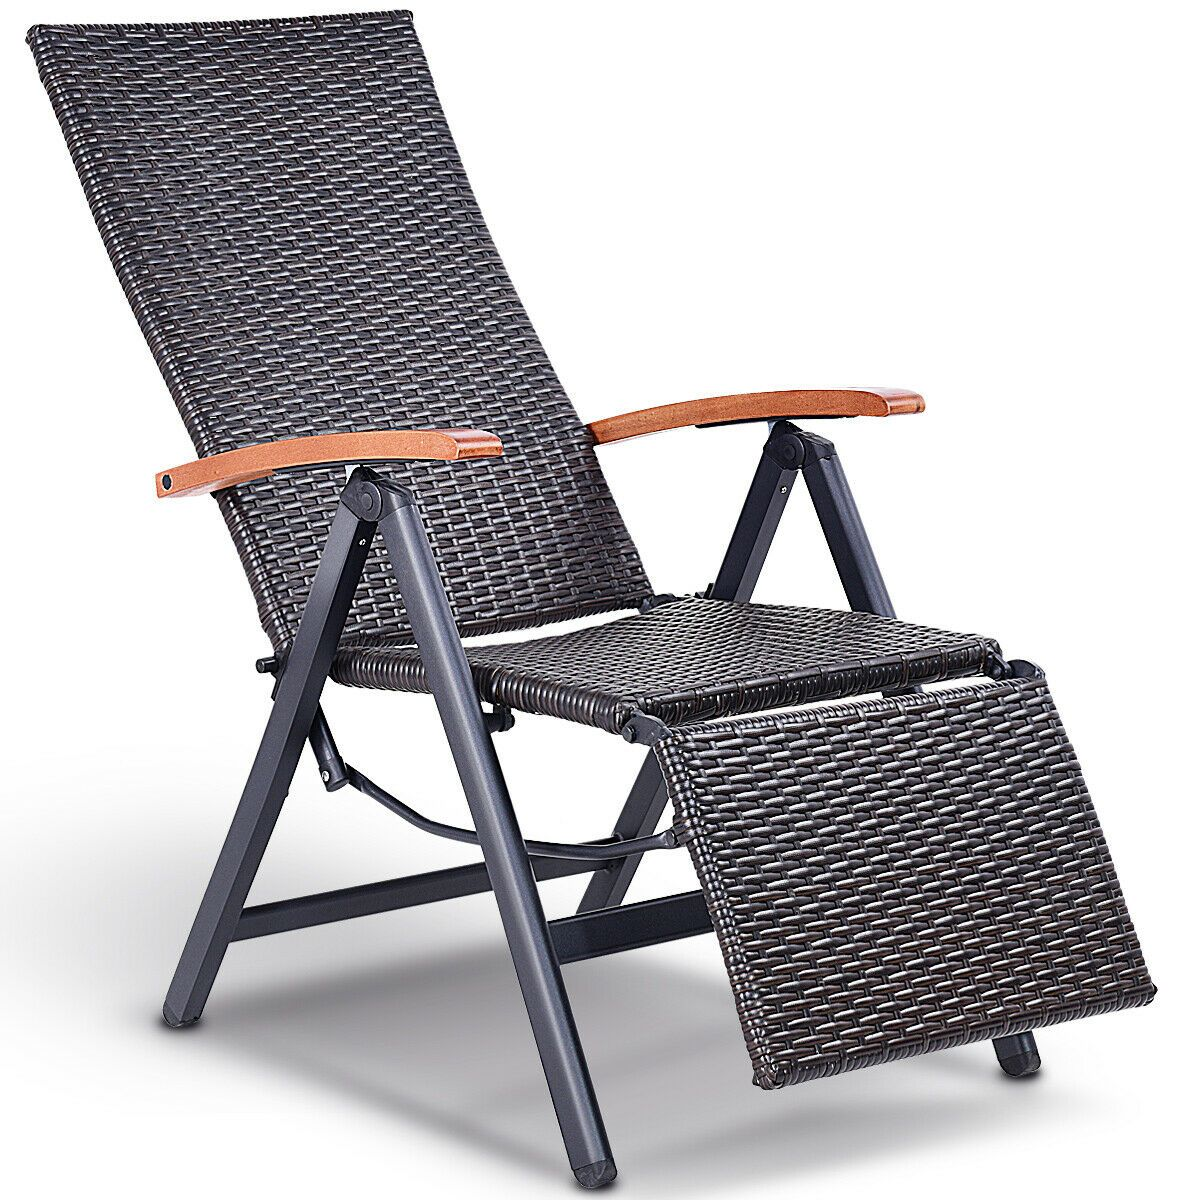 Details About Patio Folding Chair Lounge Recliner Chair Rattan